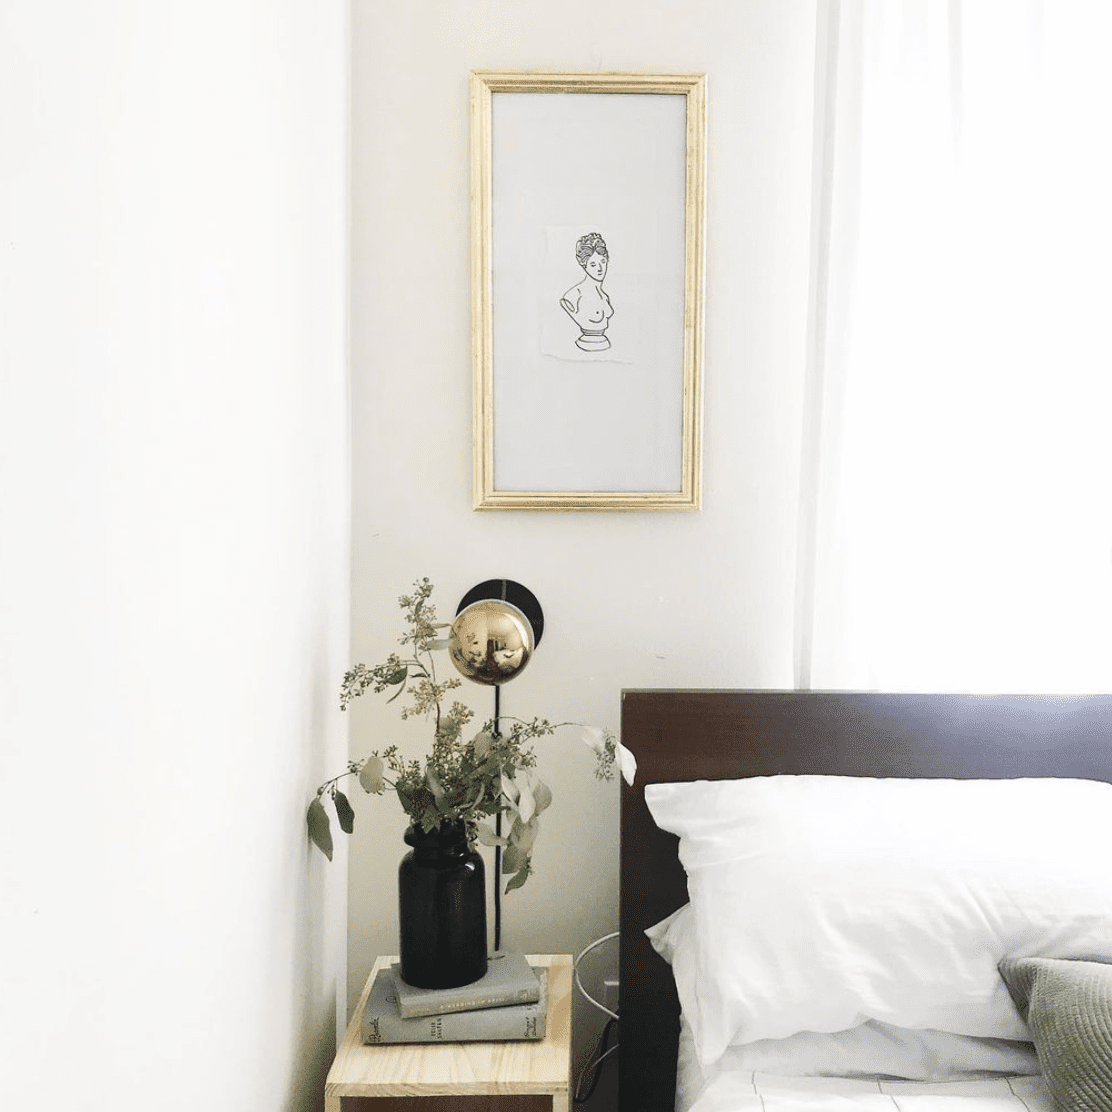 Framed small art above bed.